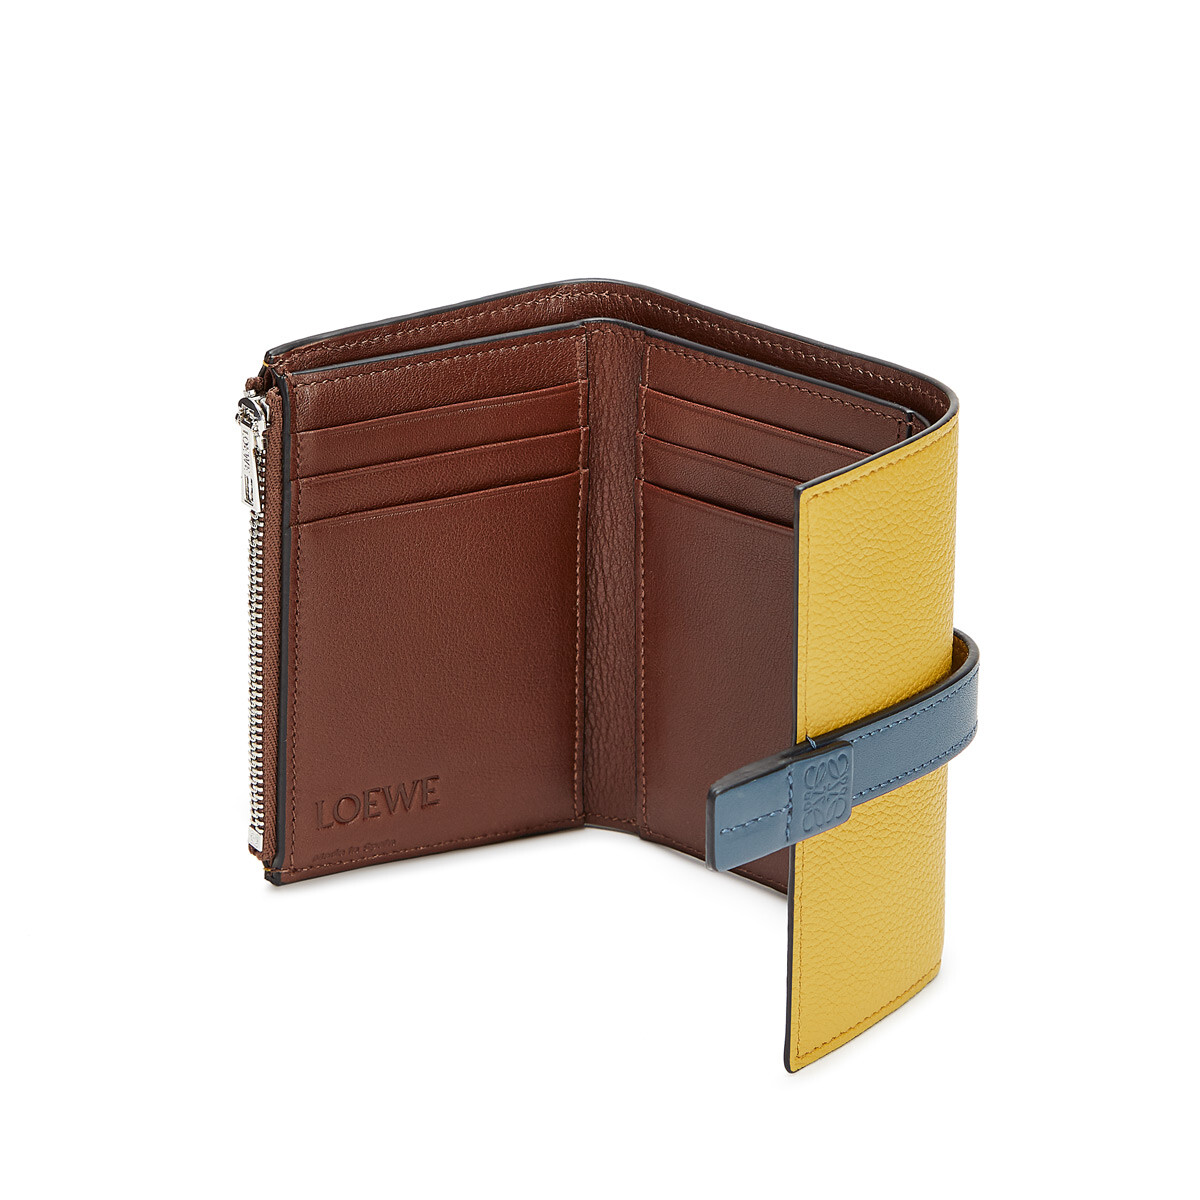 LOEWE Small Vertical Wallet Ochre/Steel Blue  front